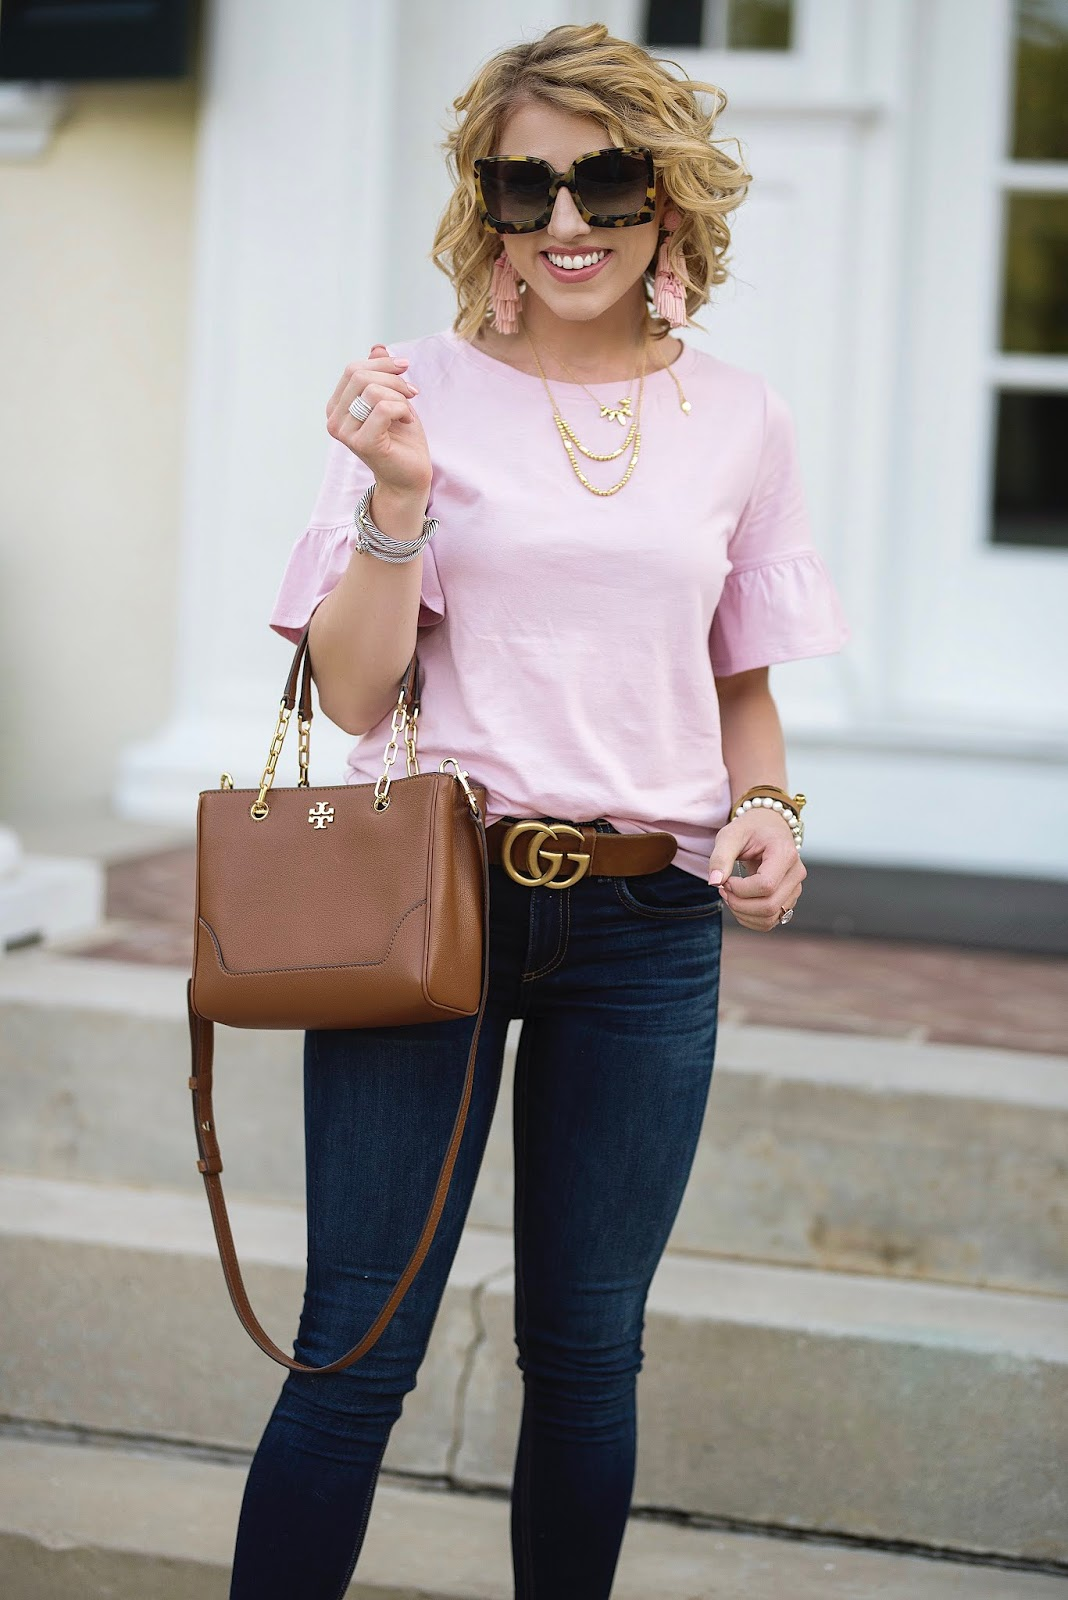 Nordstrom Anniversary Sale Under $30 Ruffle Sleeve Top - Something Delightful Blog